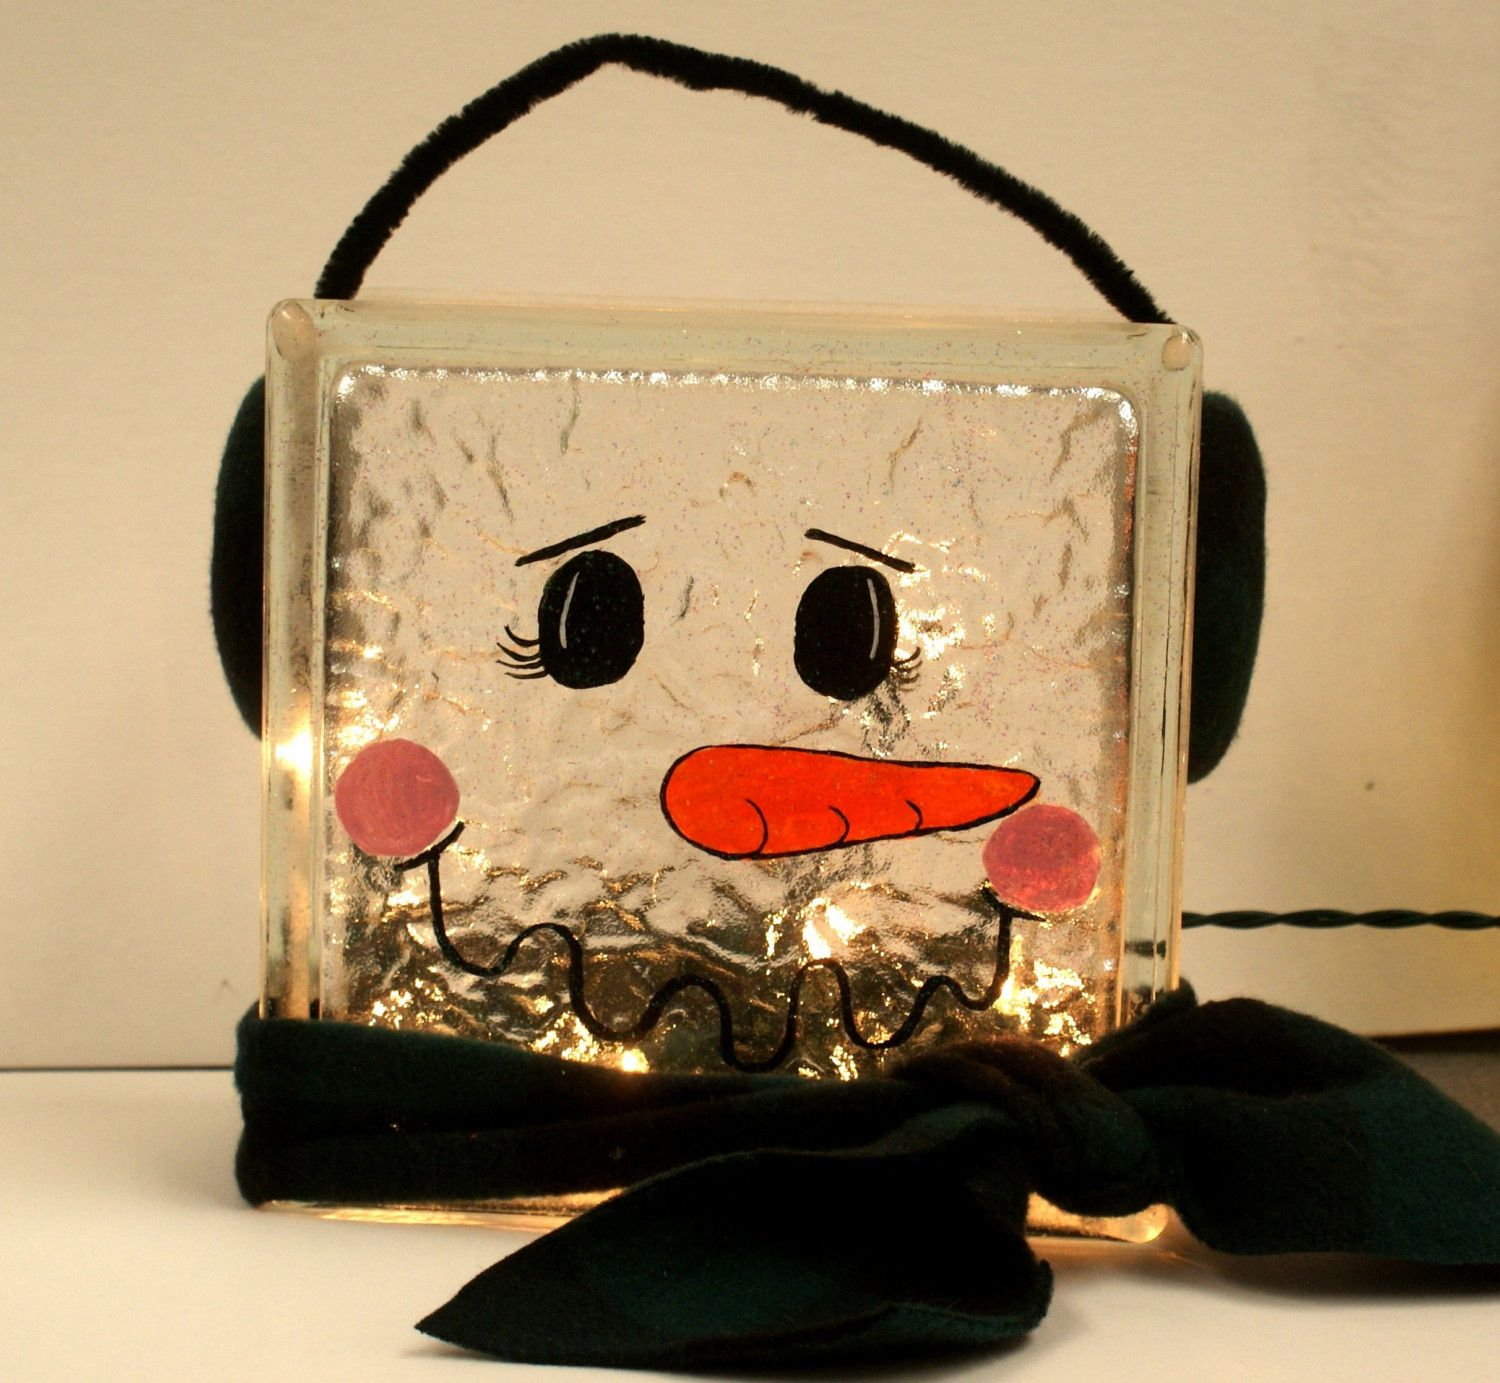 Glass block crafts projects -  Glass Block Projects Pinterest Te Vinyls Download